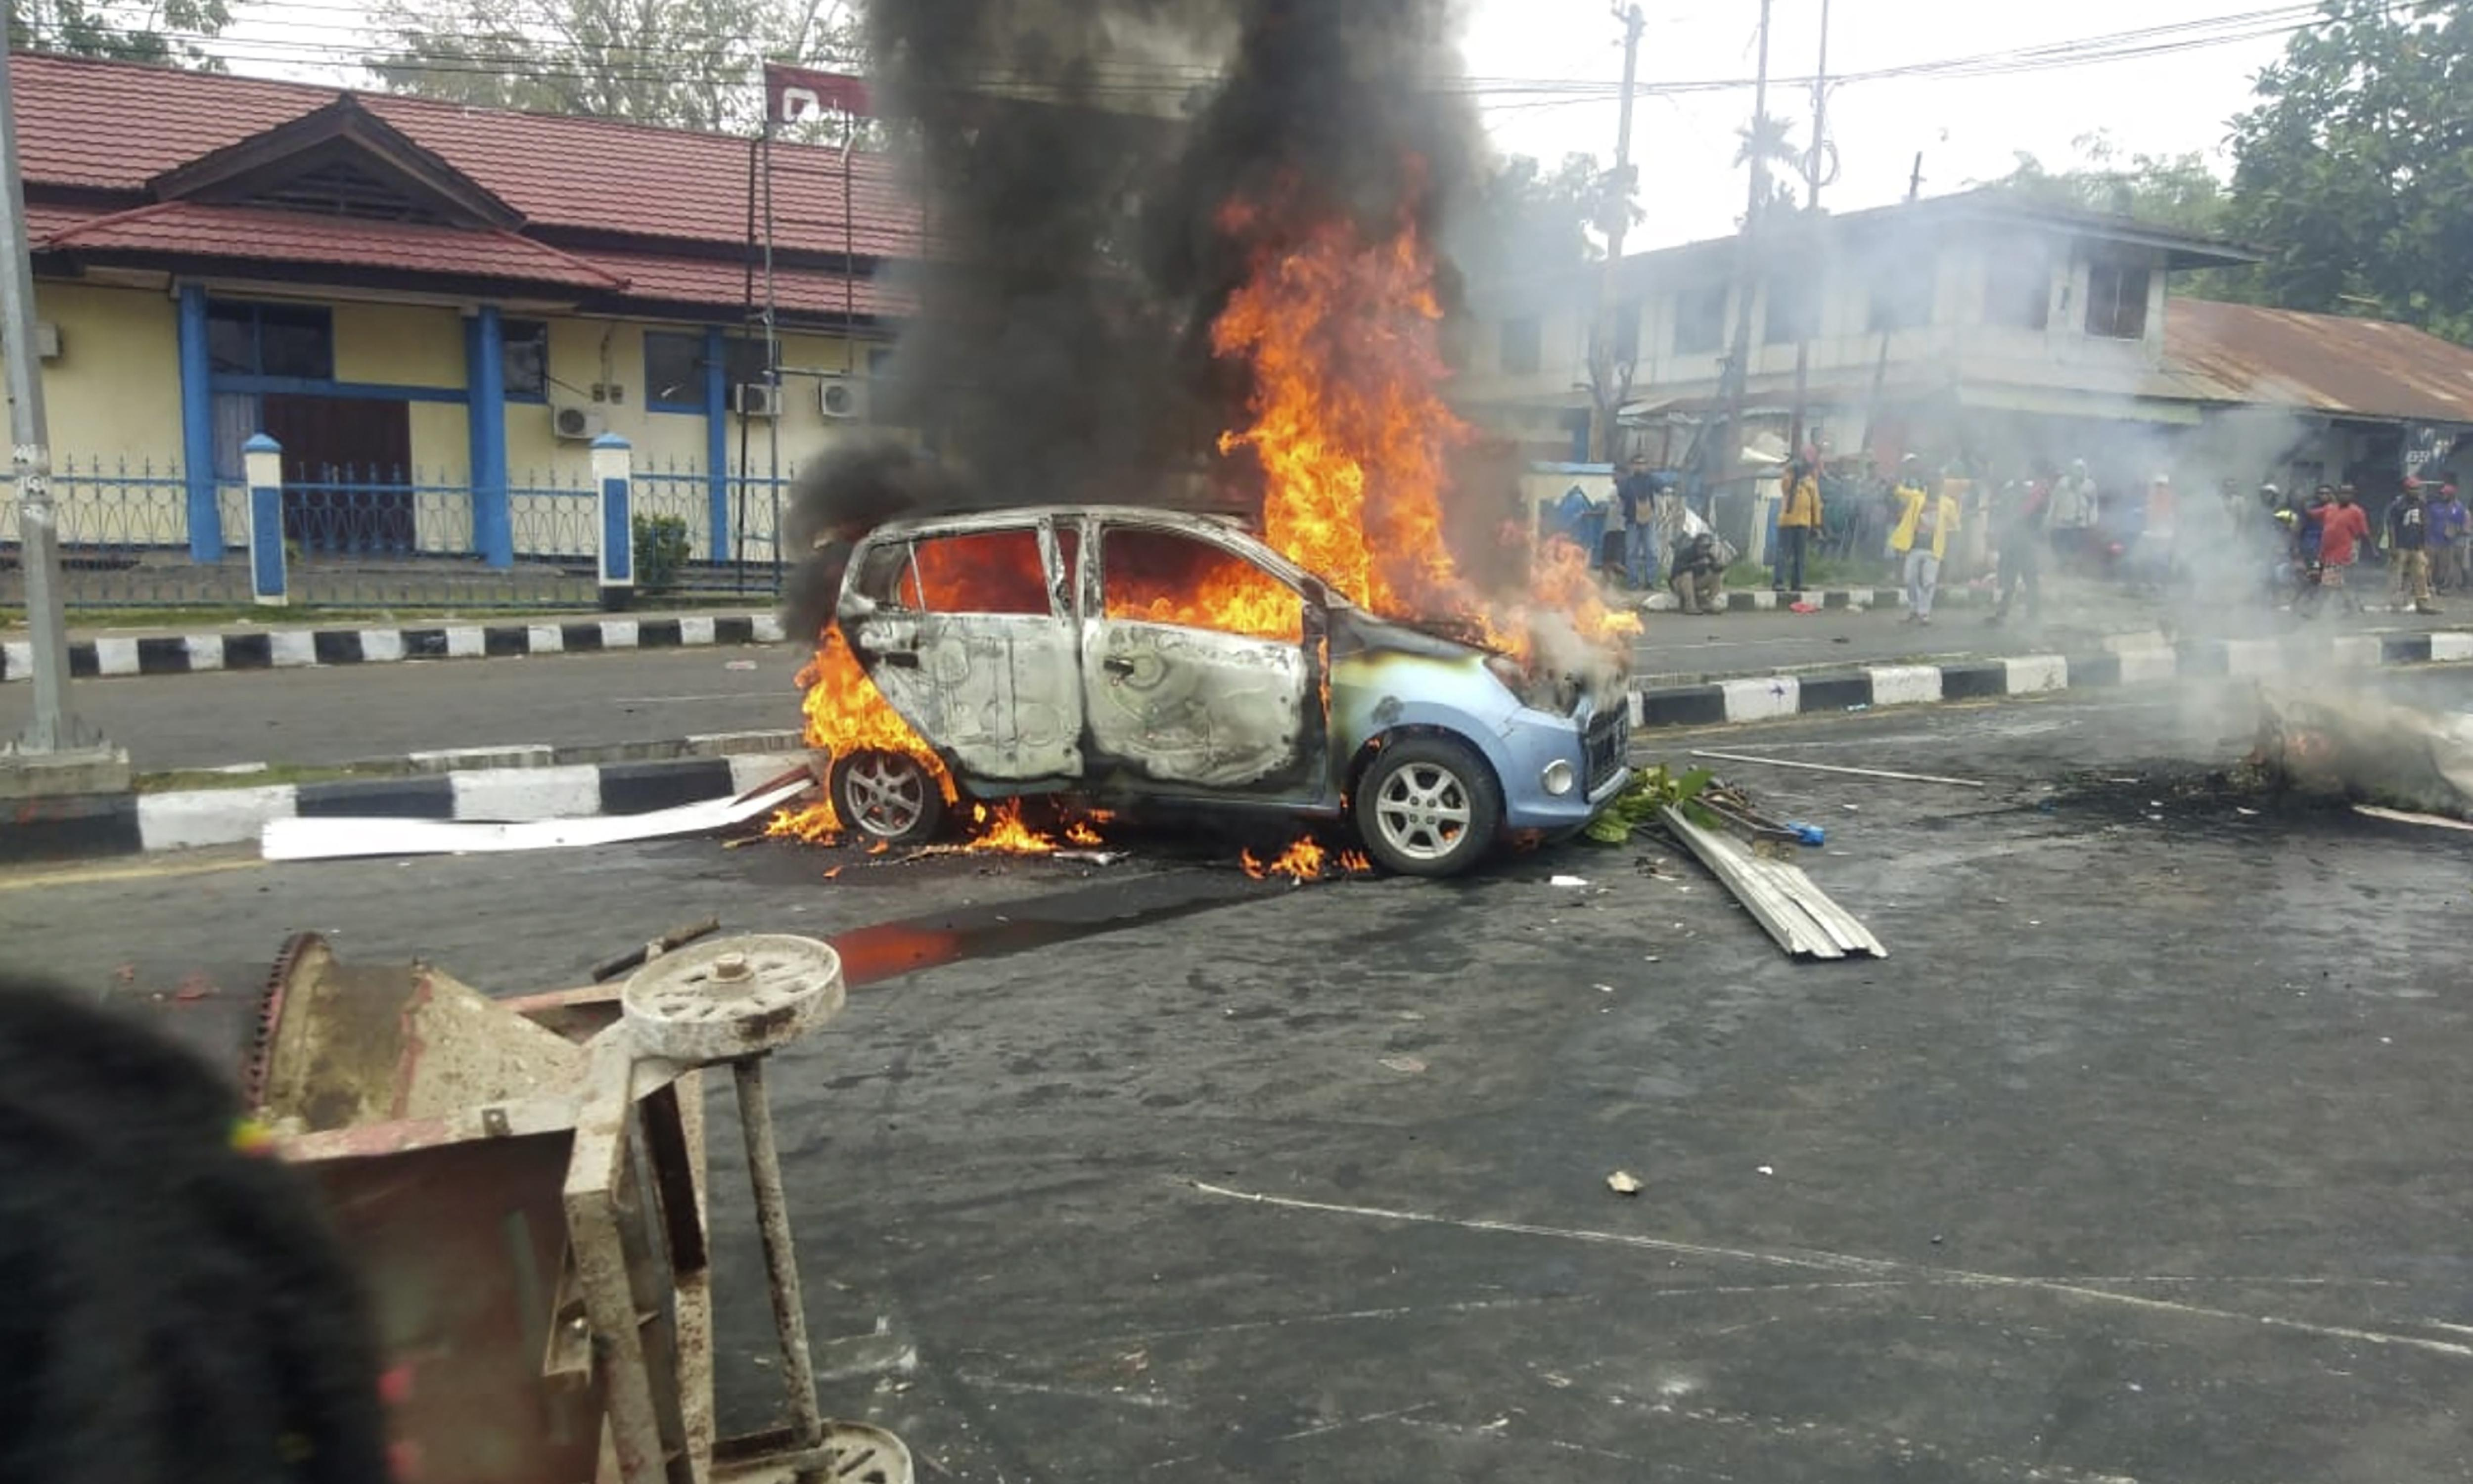 Indonesian president calls for calm after violent protests in West Papua